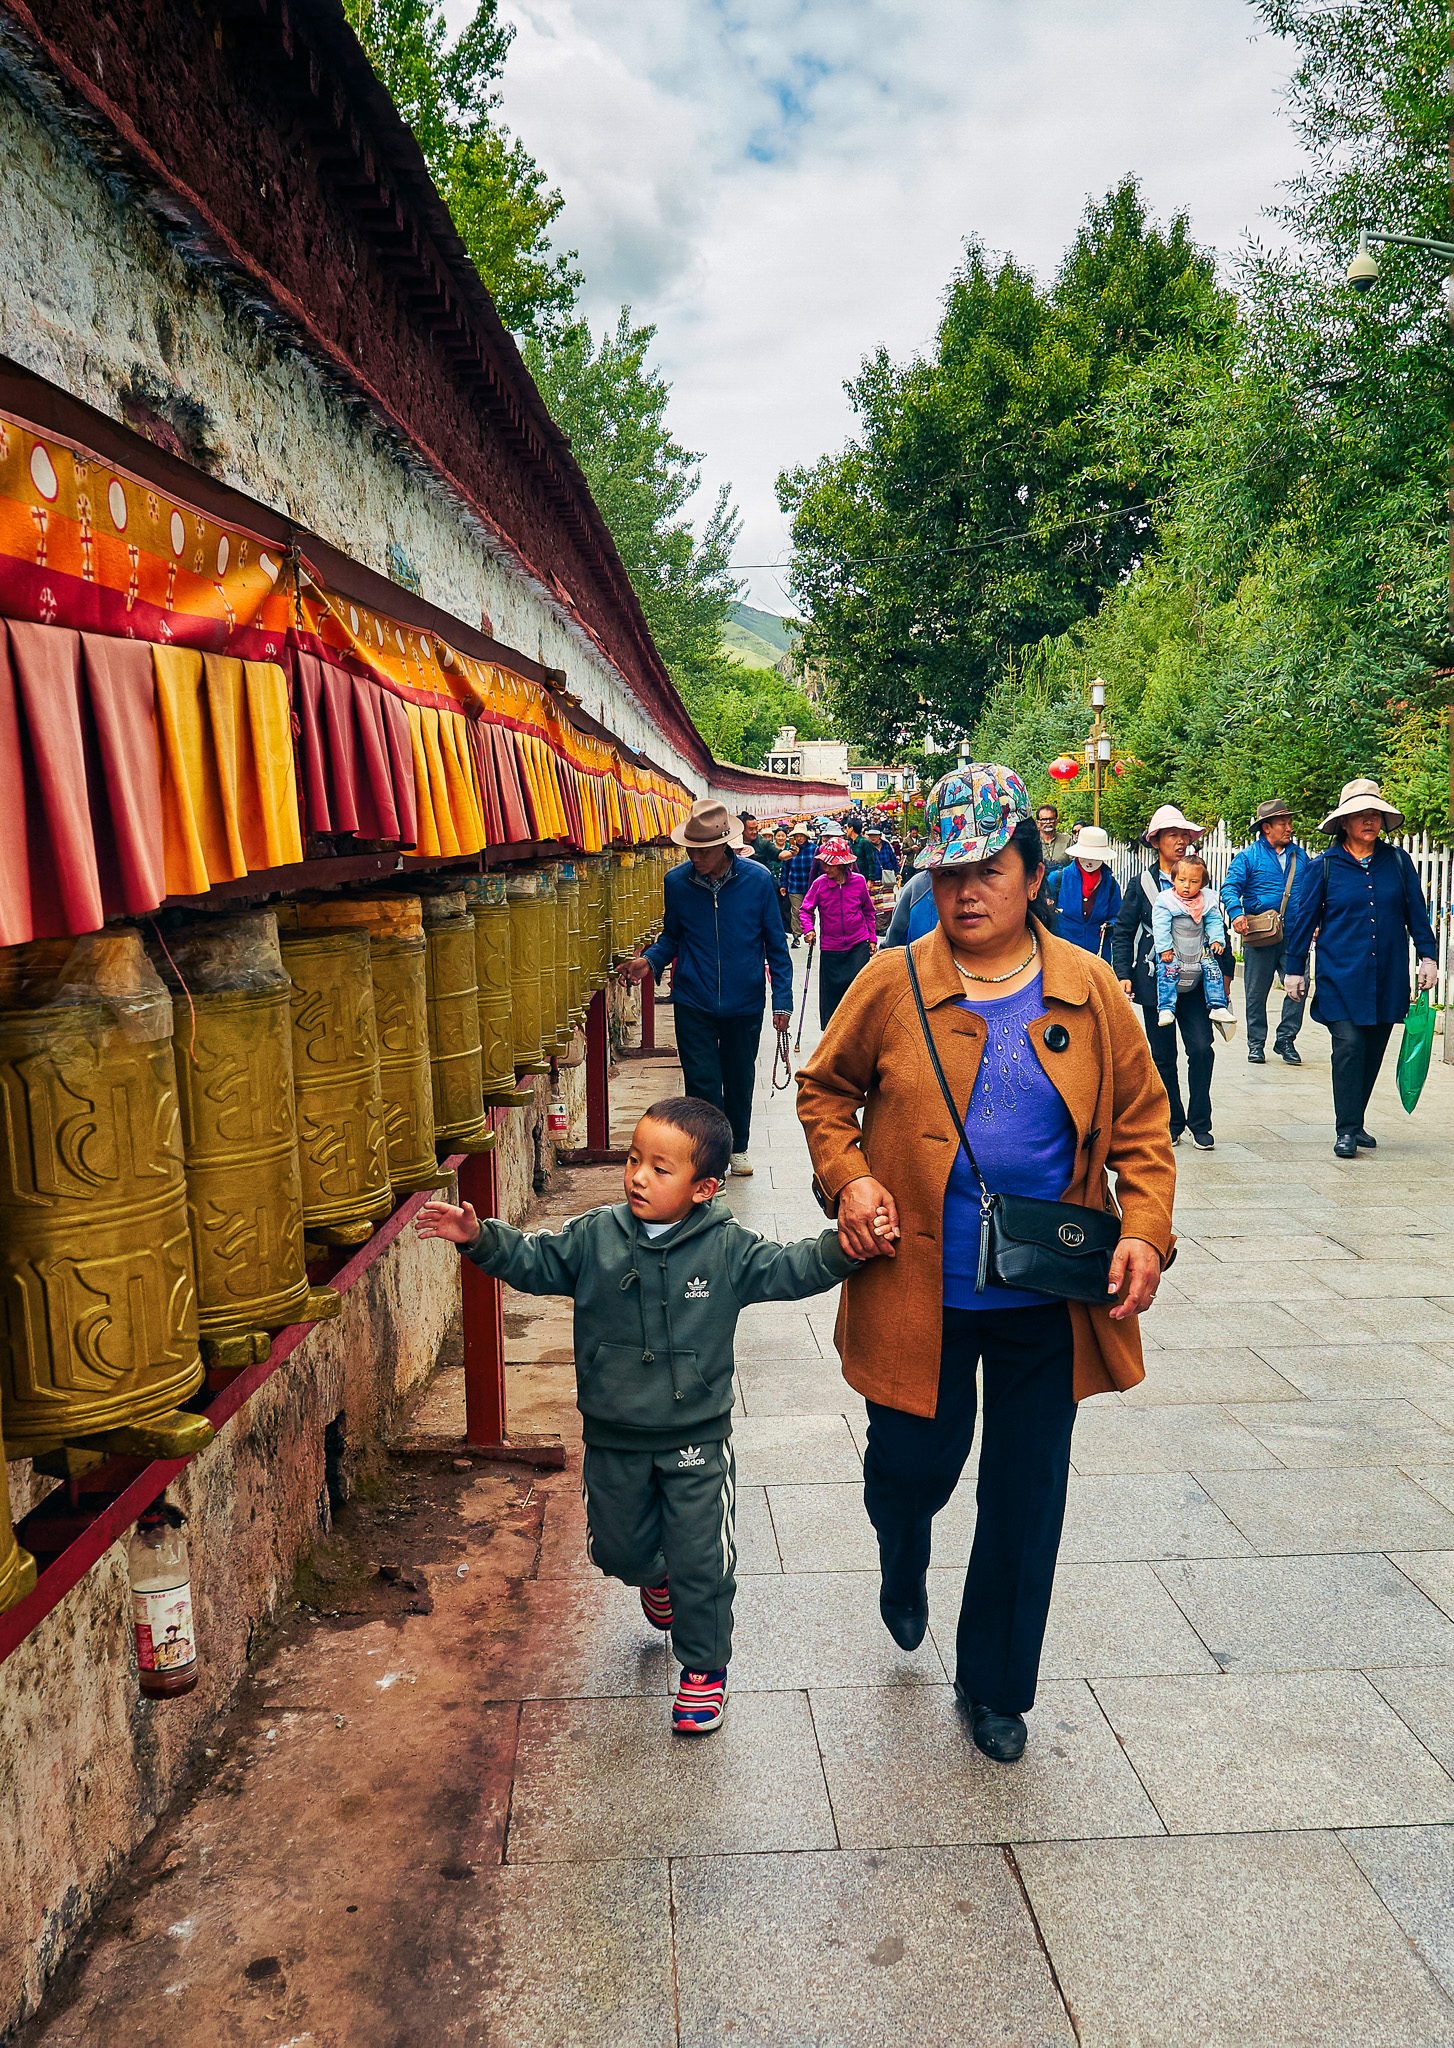 A Tibetan mother and son rolling the prayer wheels while circumambulating the sacred path, Lingkhor, outside the Potala Palace, Lhasa, Tibet